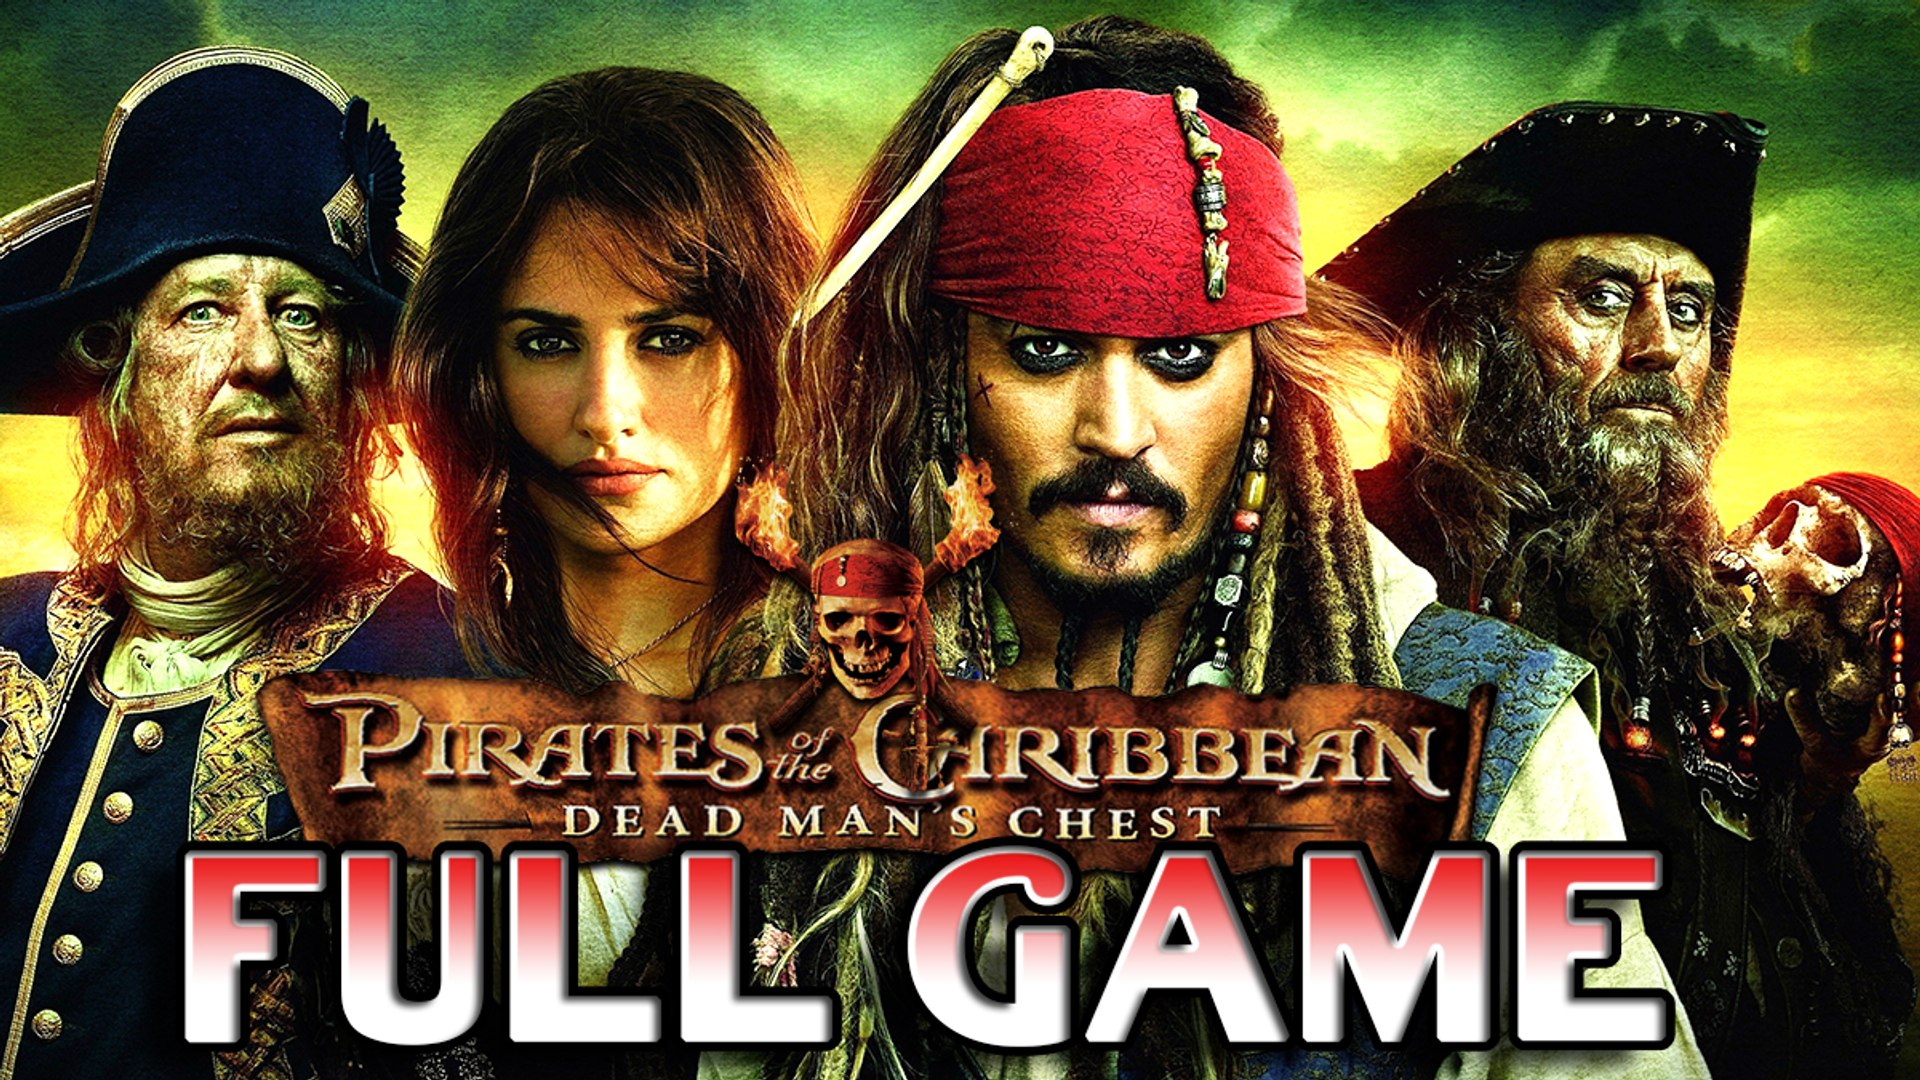 Pirates Of The Caribbean Dead Man S Chest Full Game Longplay Psp Video Dailymotion